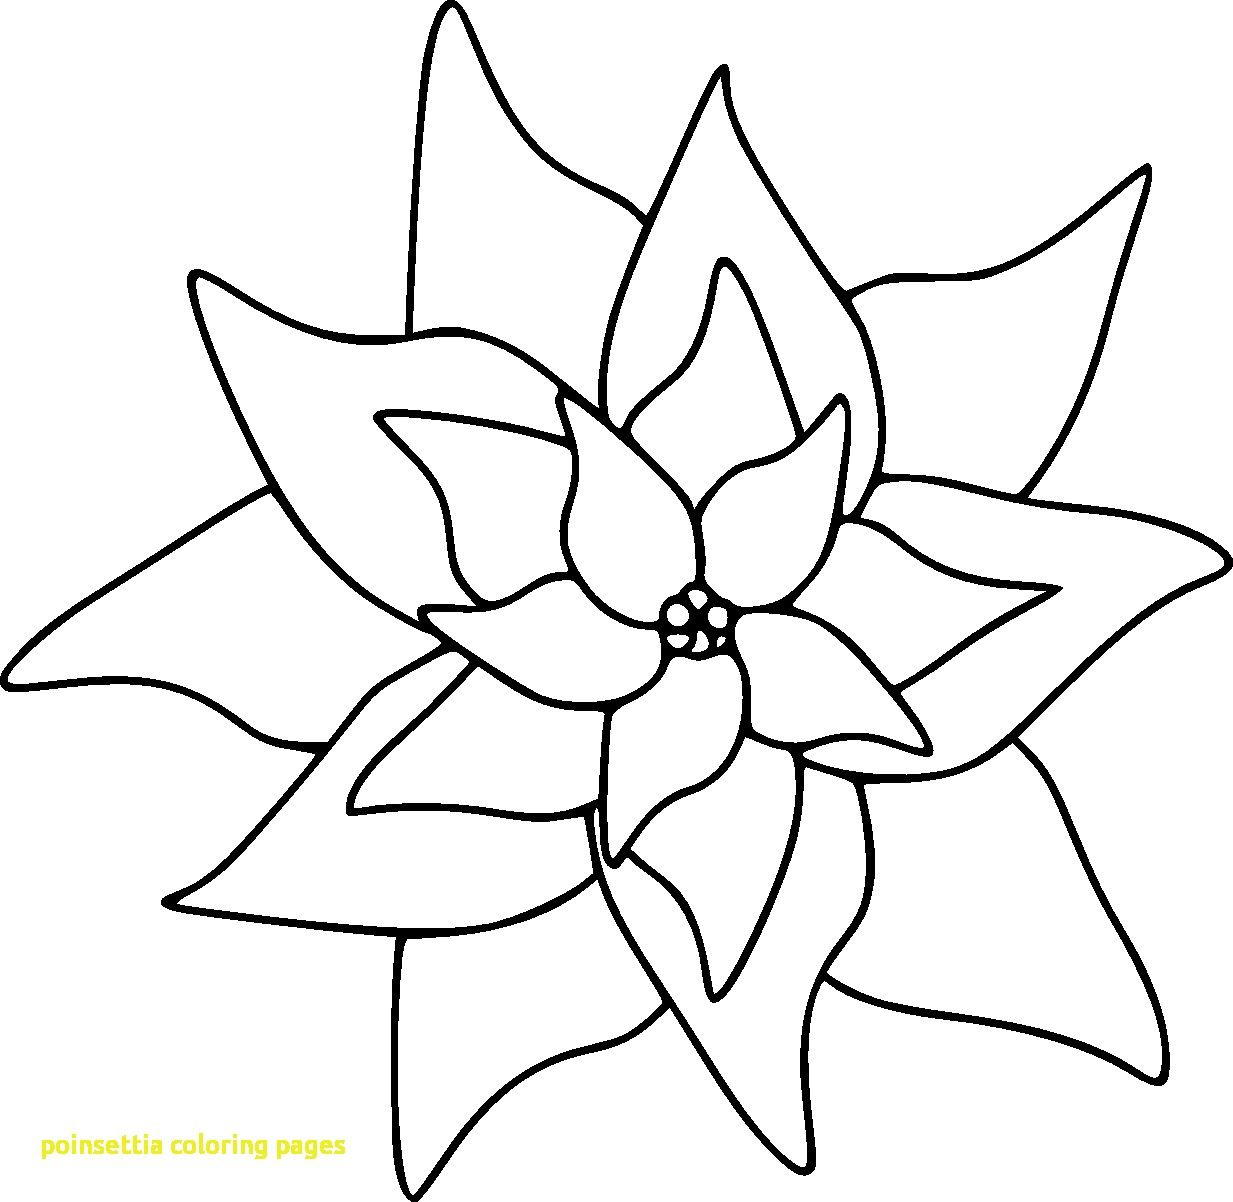 Poinsettia Coloring Pages 5 15837 Throughout Page